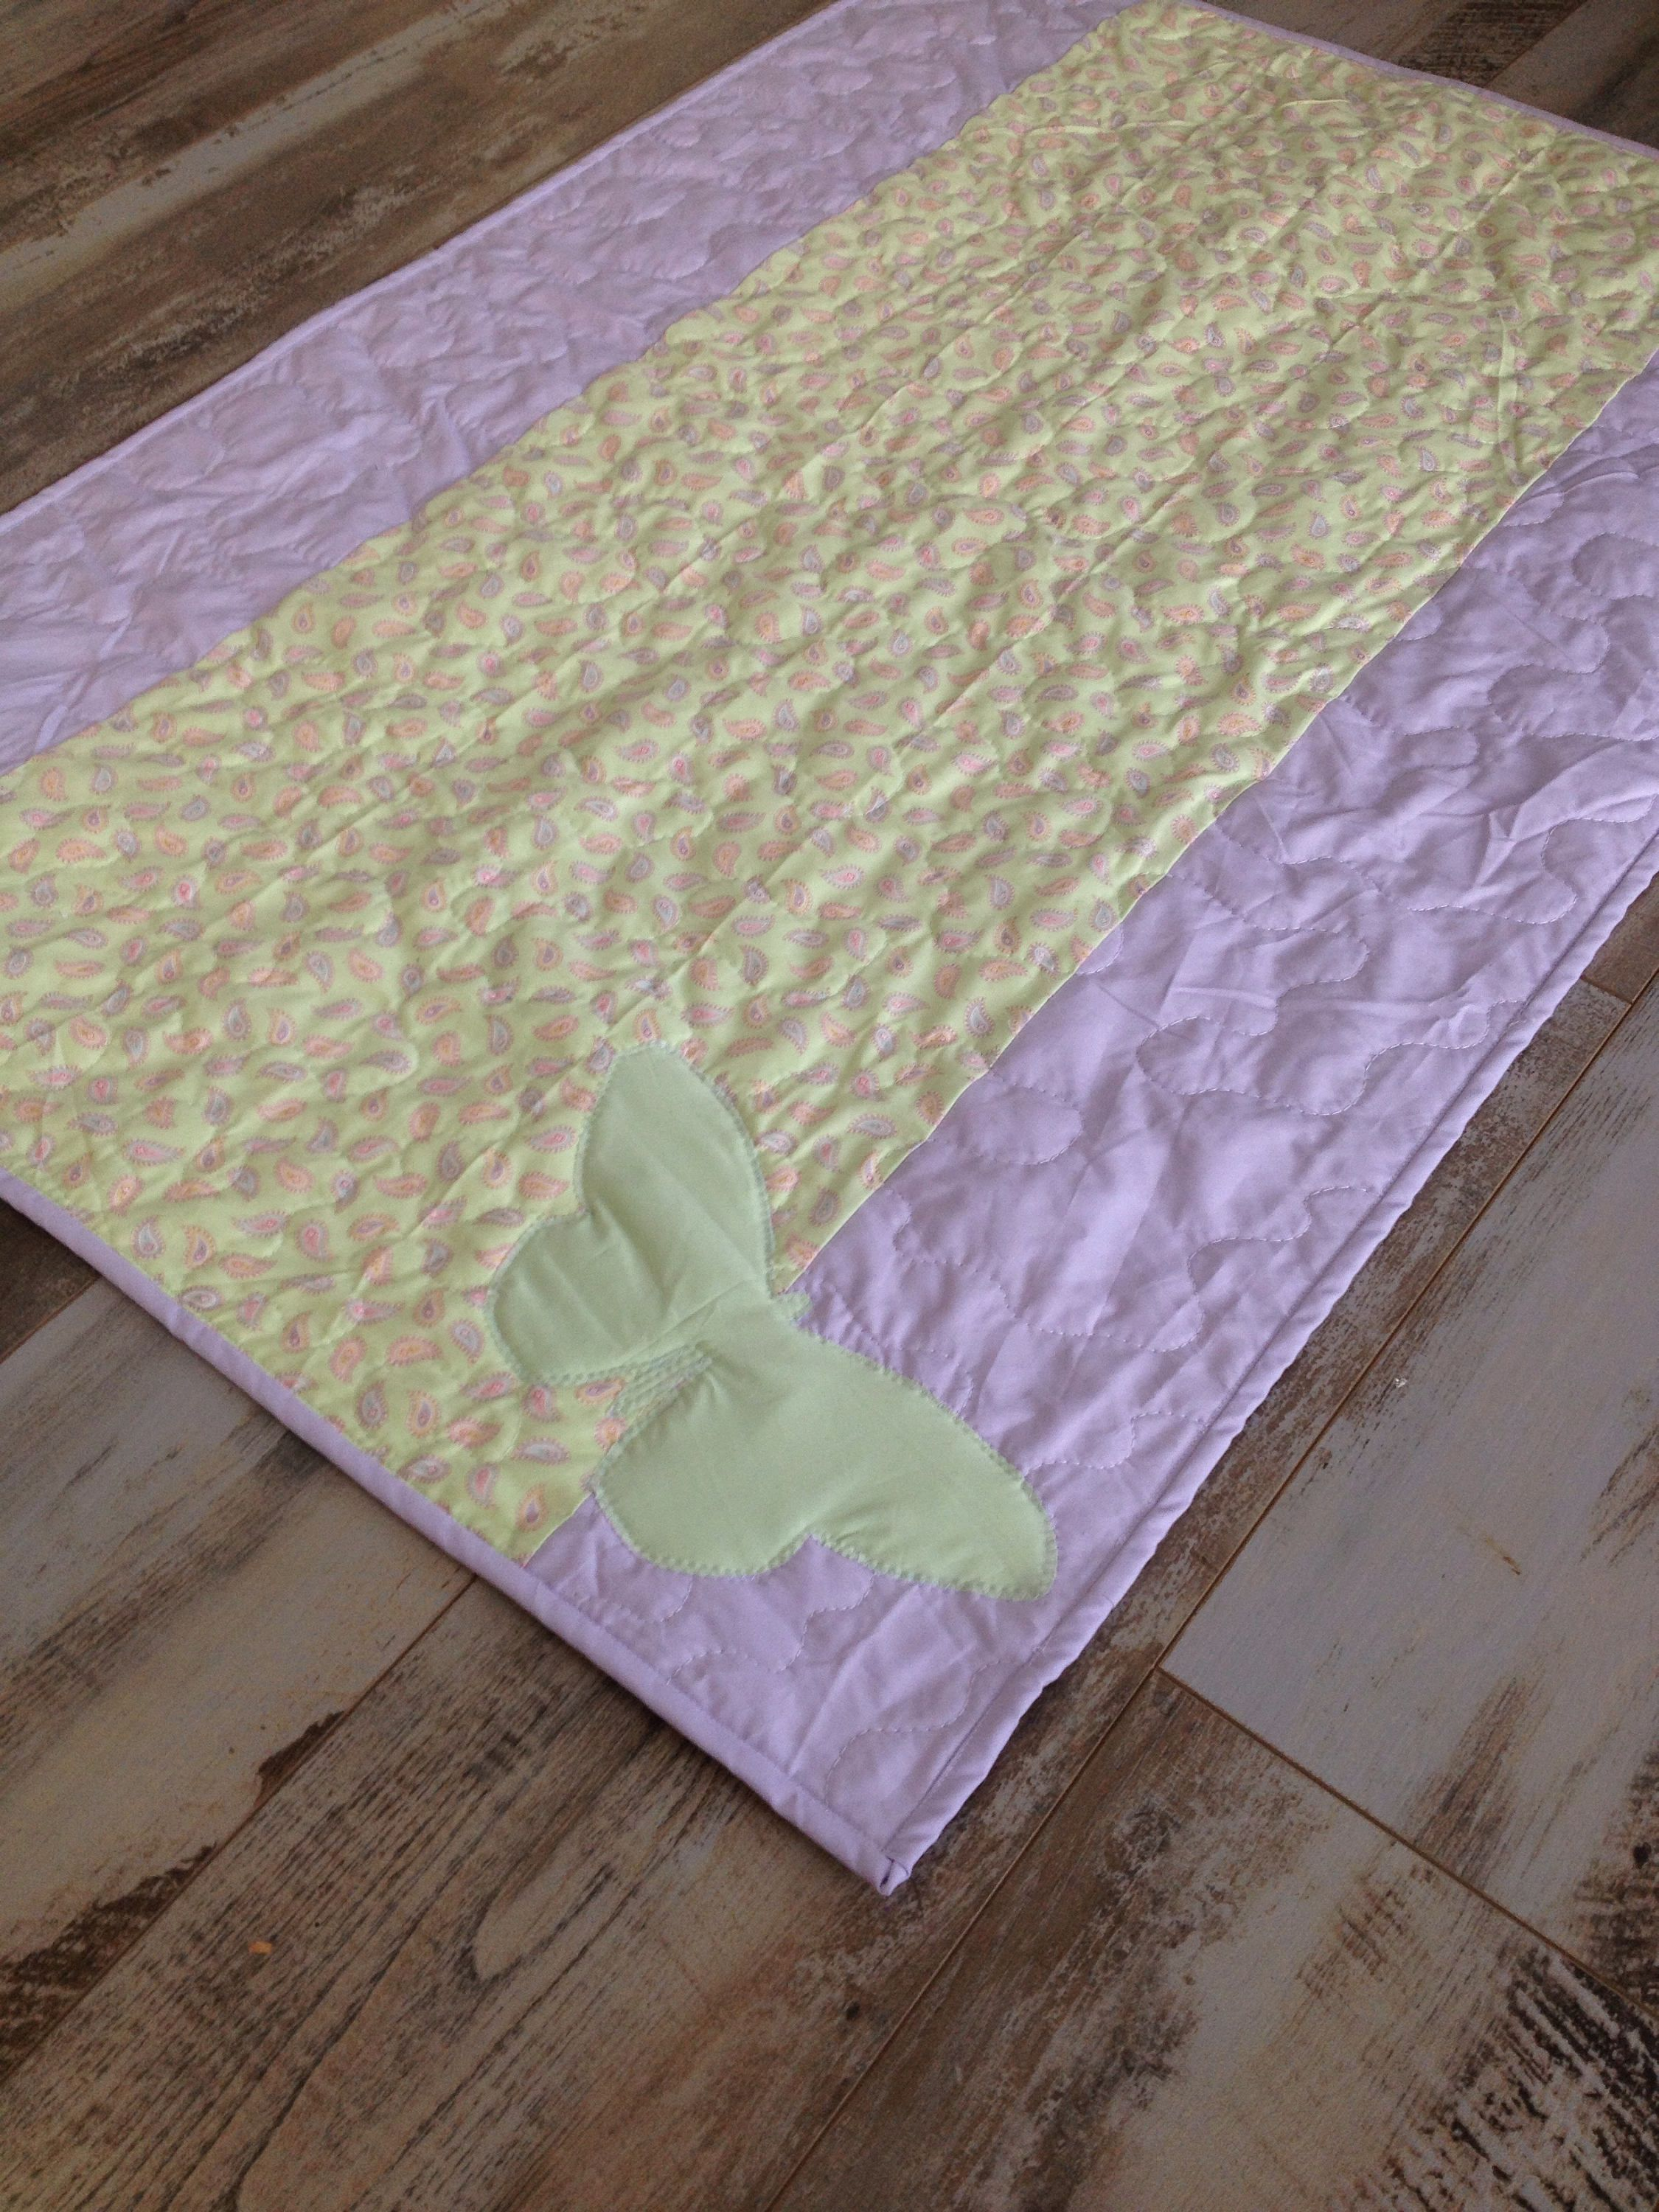 Baby girl quilt baby quilt baby blanket personalized quilt baby girl quilt baby quilt baby blanket personalized quilt personalized baby gift negle Image collections